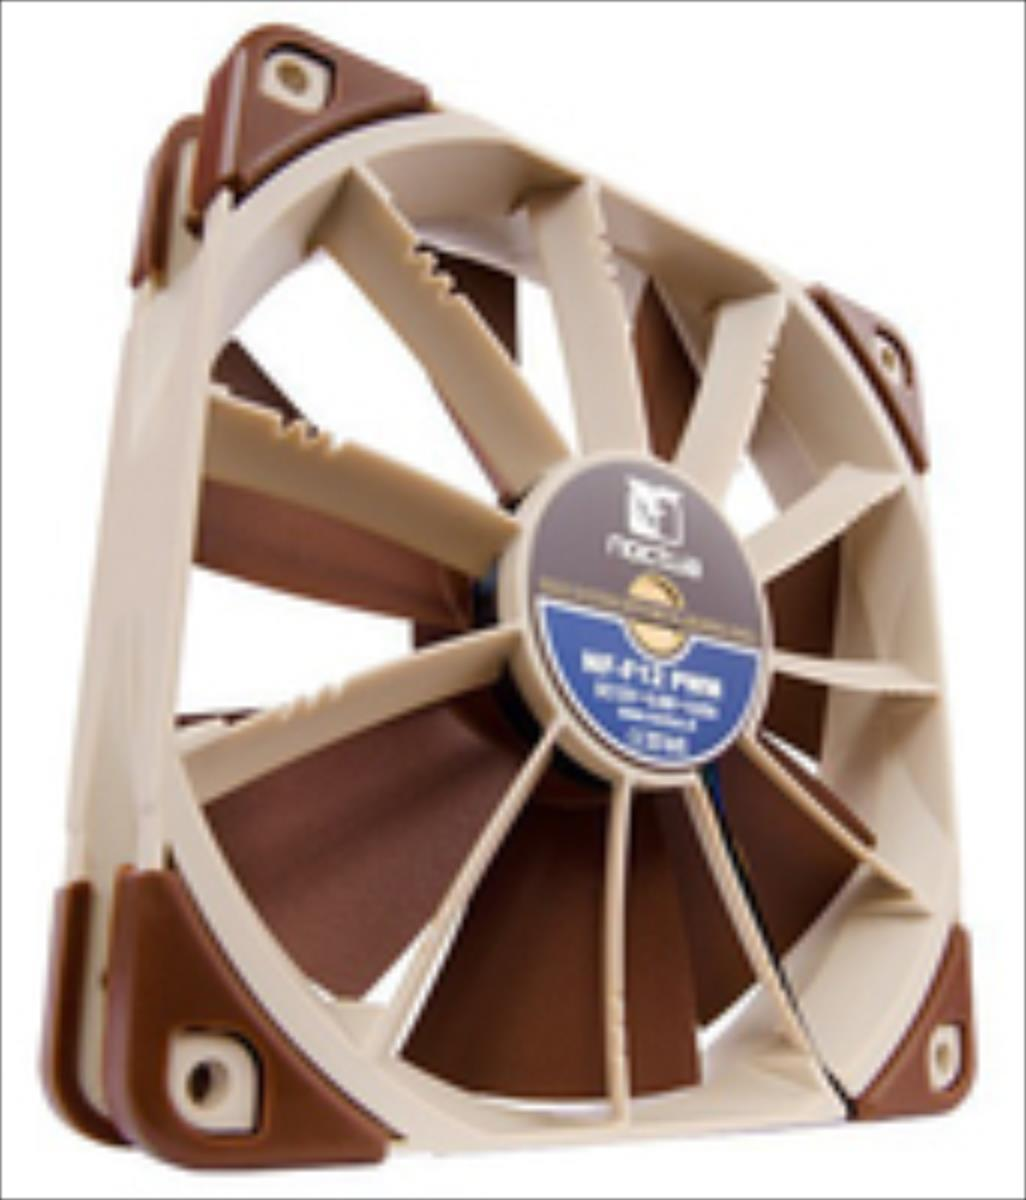 Noctua NF-F12-PWM cooler - 120mm ventilators